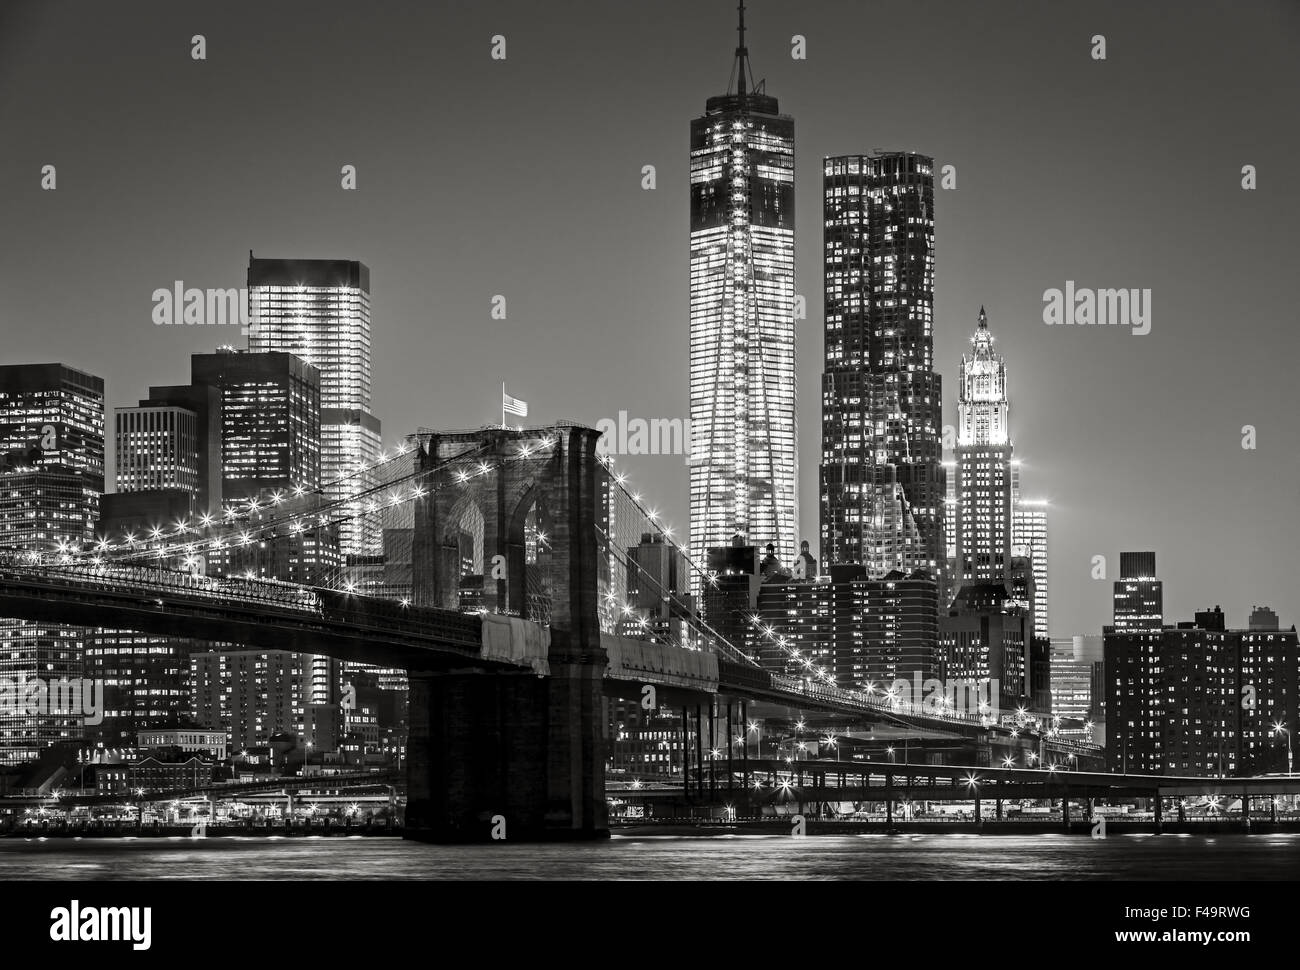 Black & White cityscape by night. View of Brooklyn Bridge, Lower Manhattan and  Financial District's skyscrapers, - Stock Image